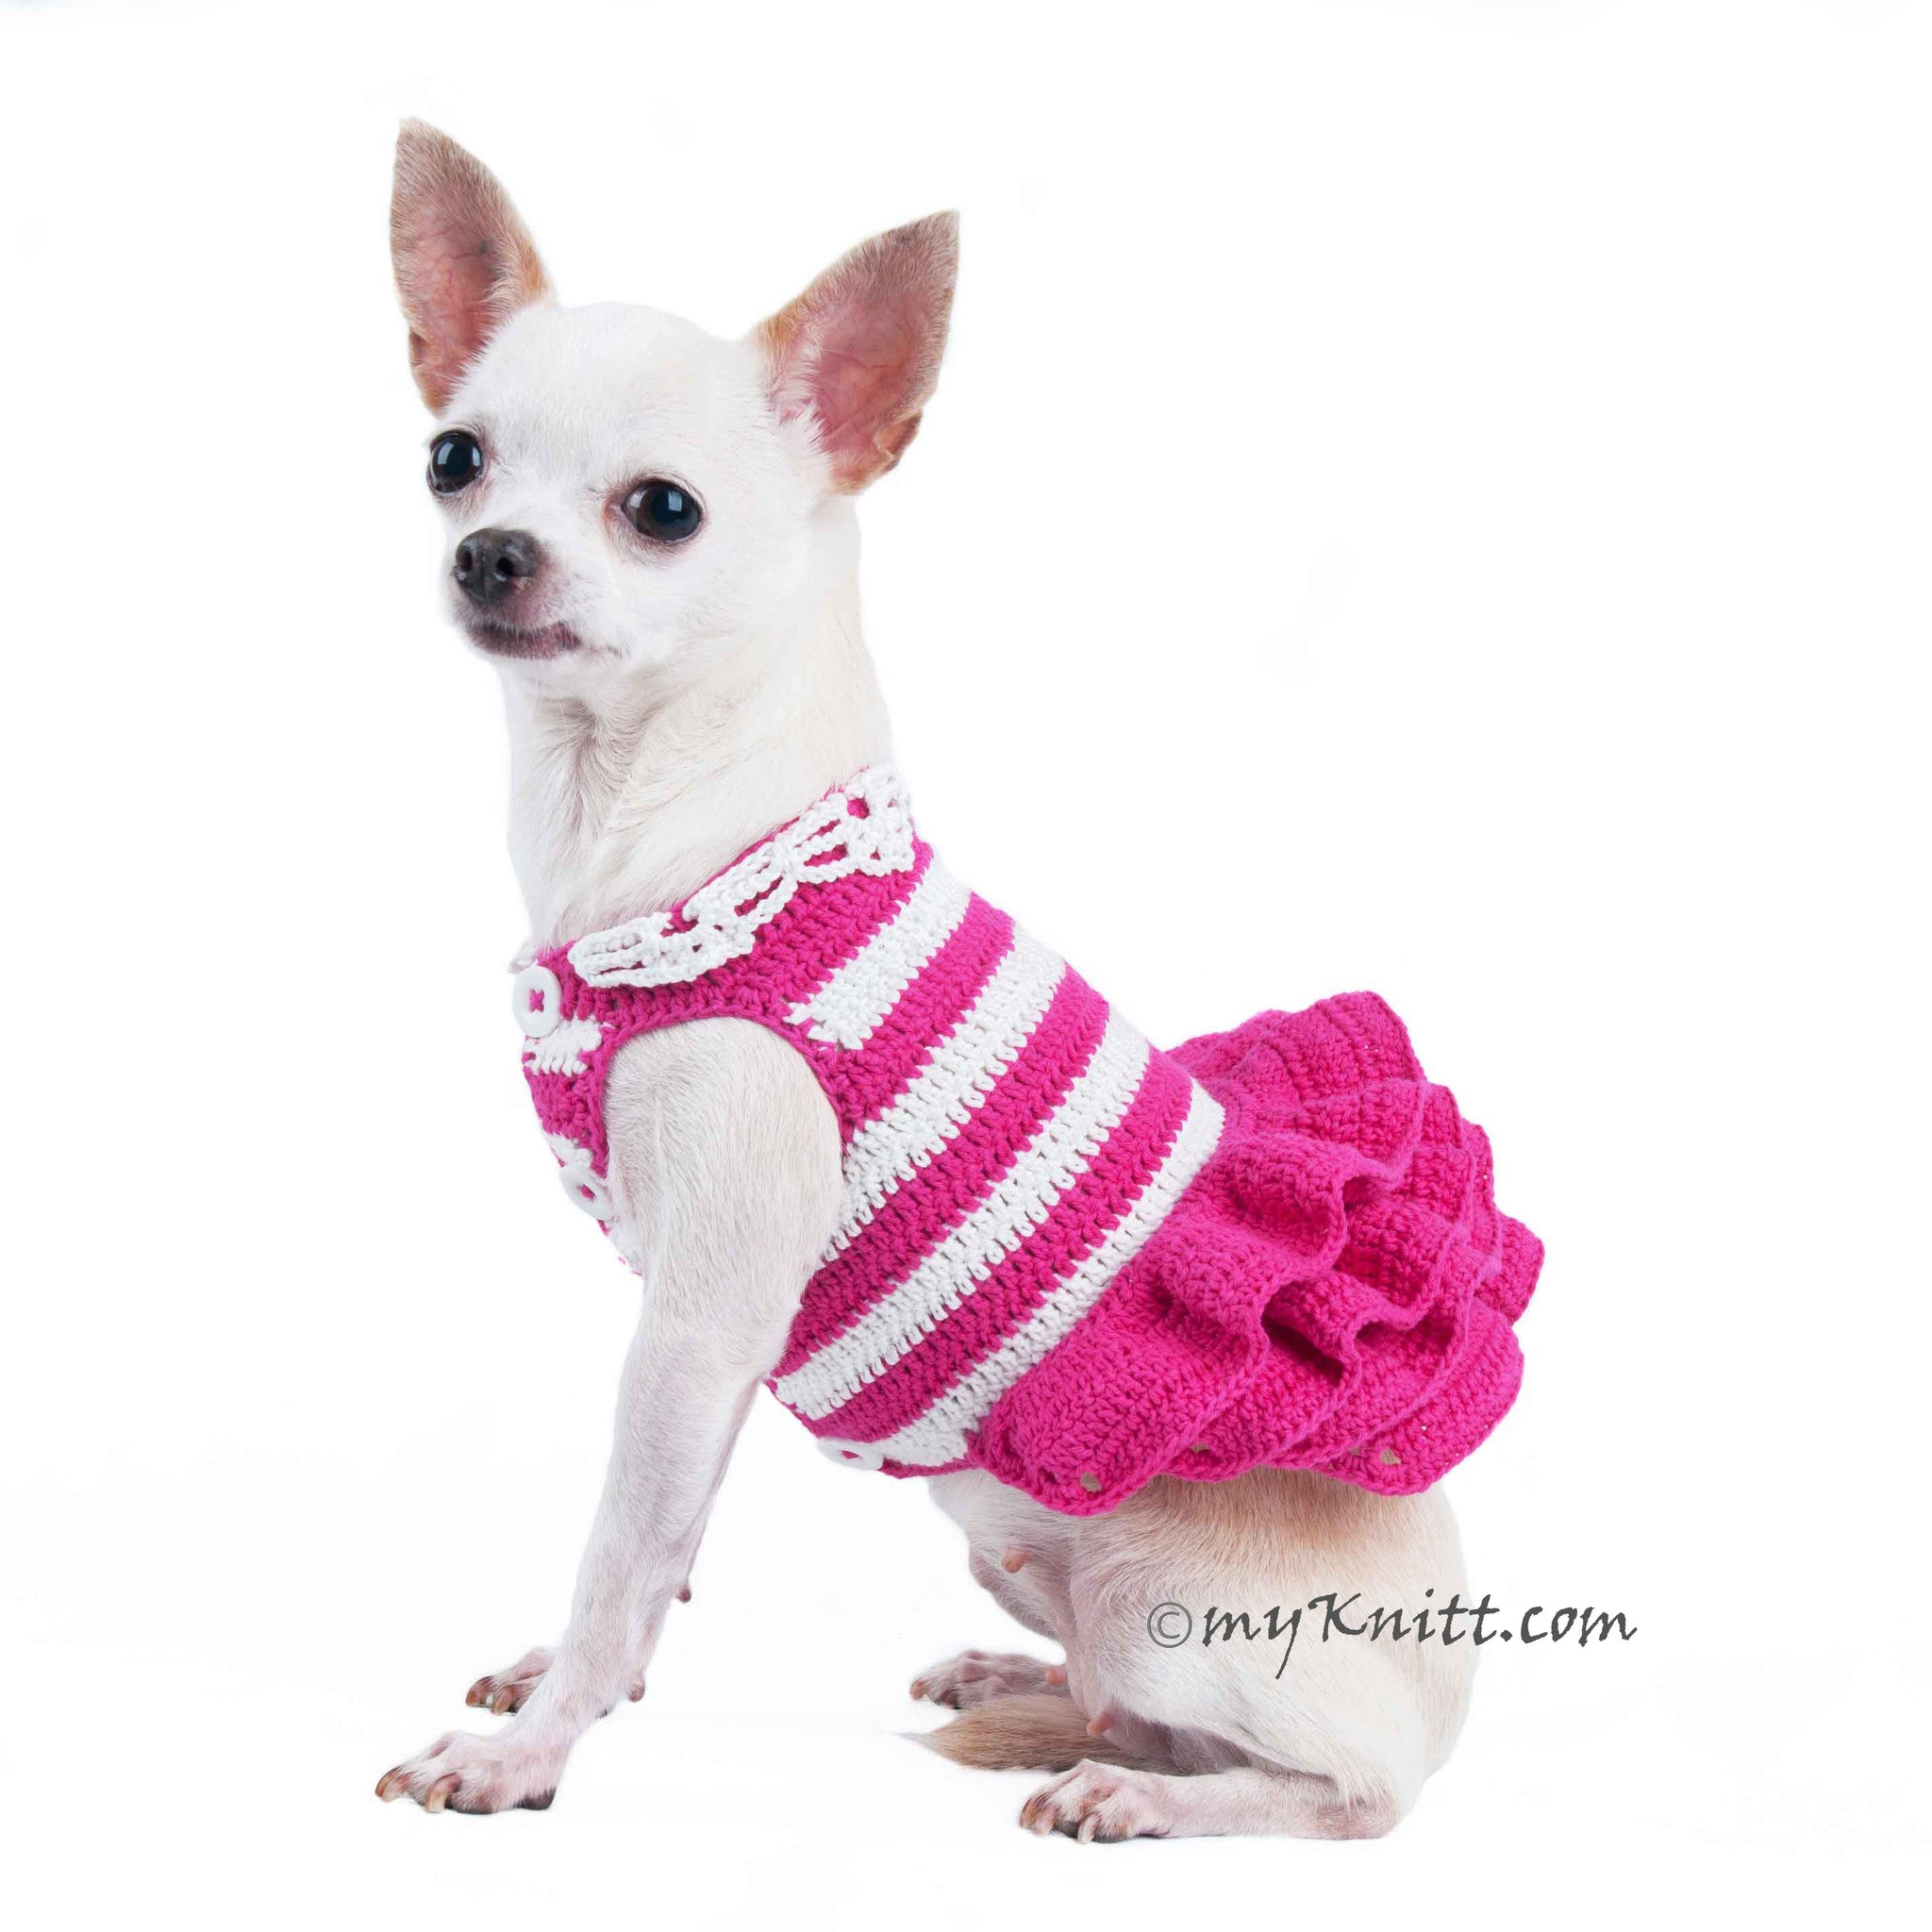 Amazing Clothes Army Adorable Dog - DF71_1  Perfect Image Reference_141938  .jpg?v\u003d1460273590